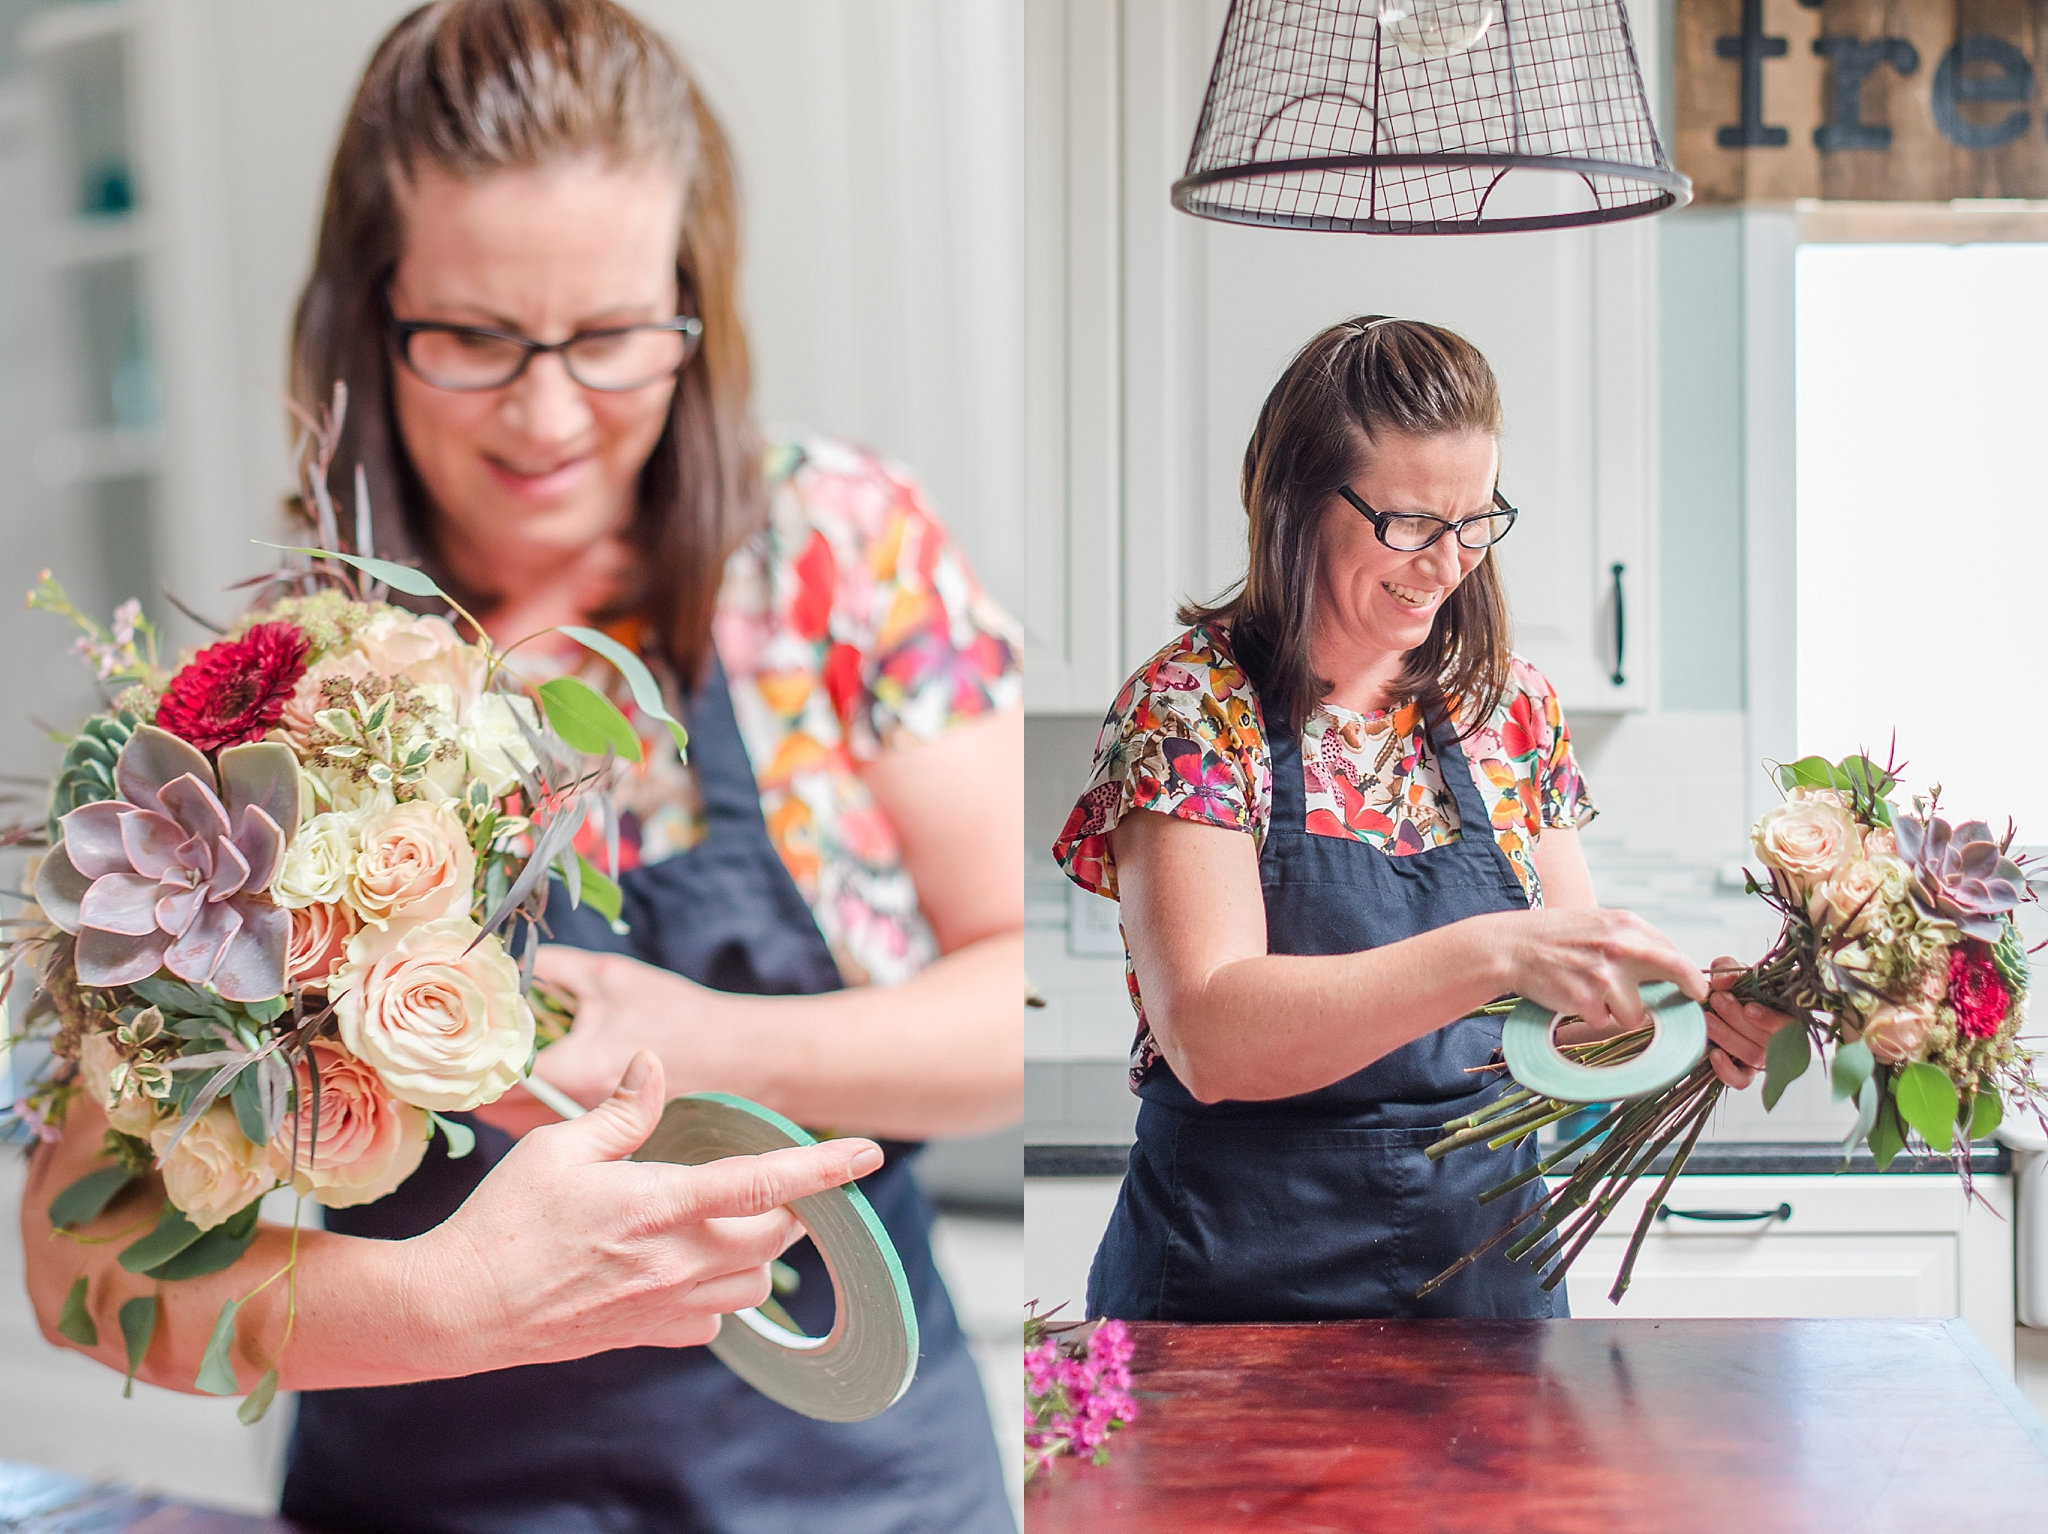 Aubri MacDonald, owner of AZ Flower Fix in Litchfield Park, Arizona. Vendor photo taken by Jade Min Photography, based out of Gilbert, Arizona.